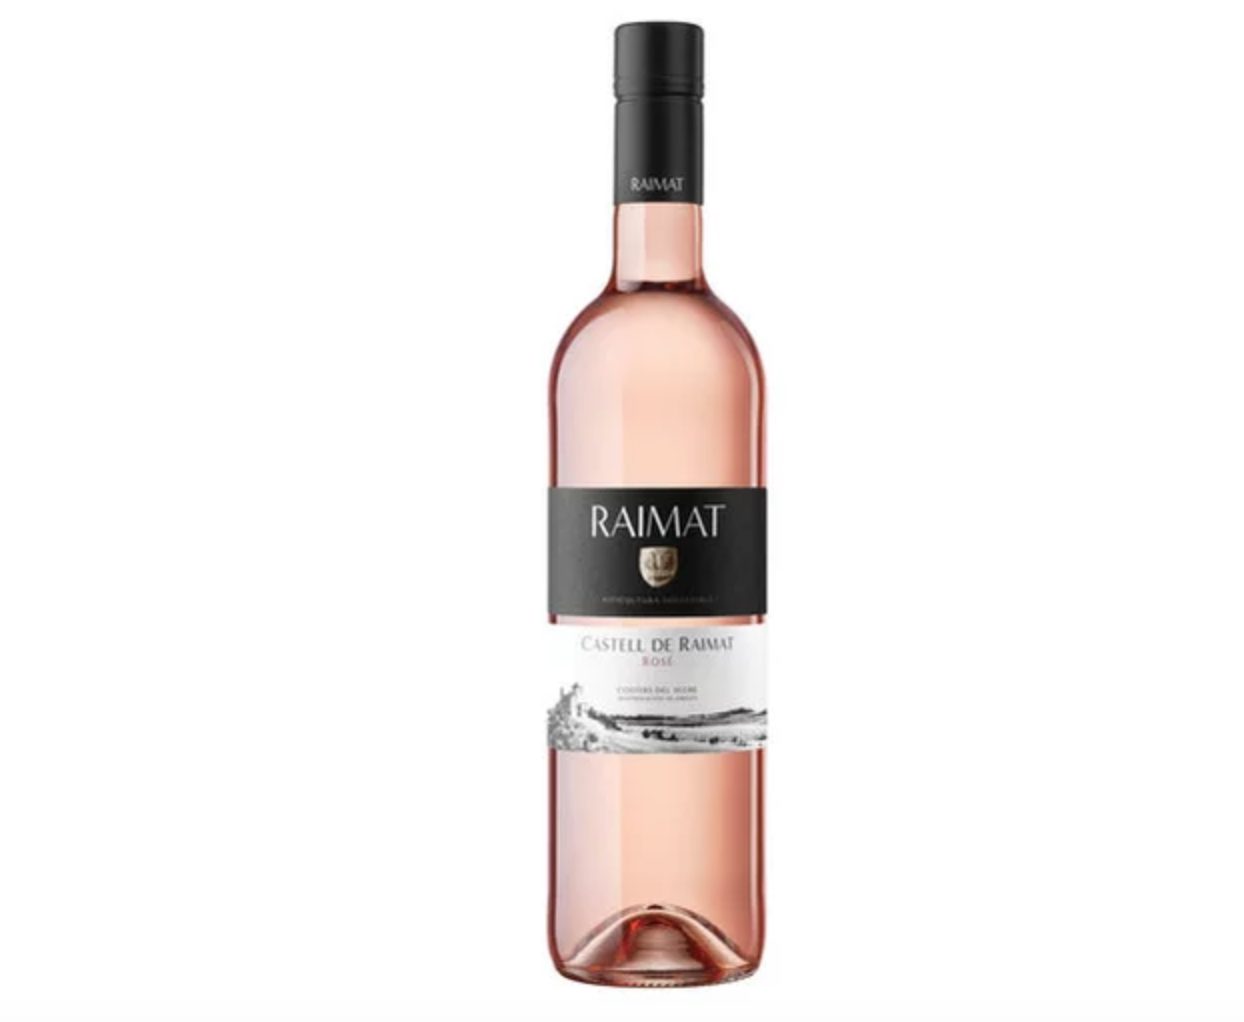 Best Rose Wines Under $20 - Read more @Food and Wine